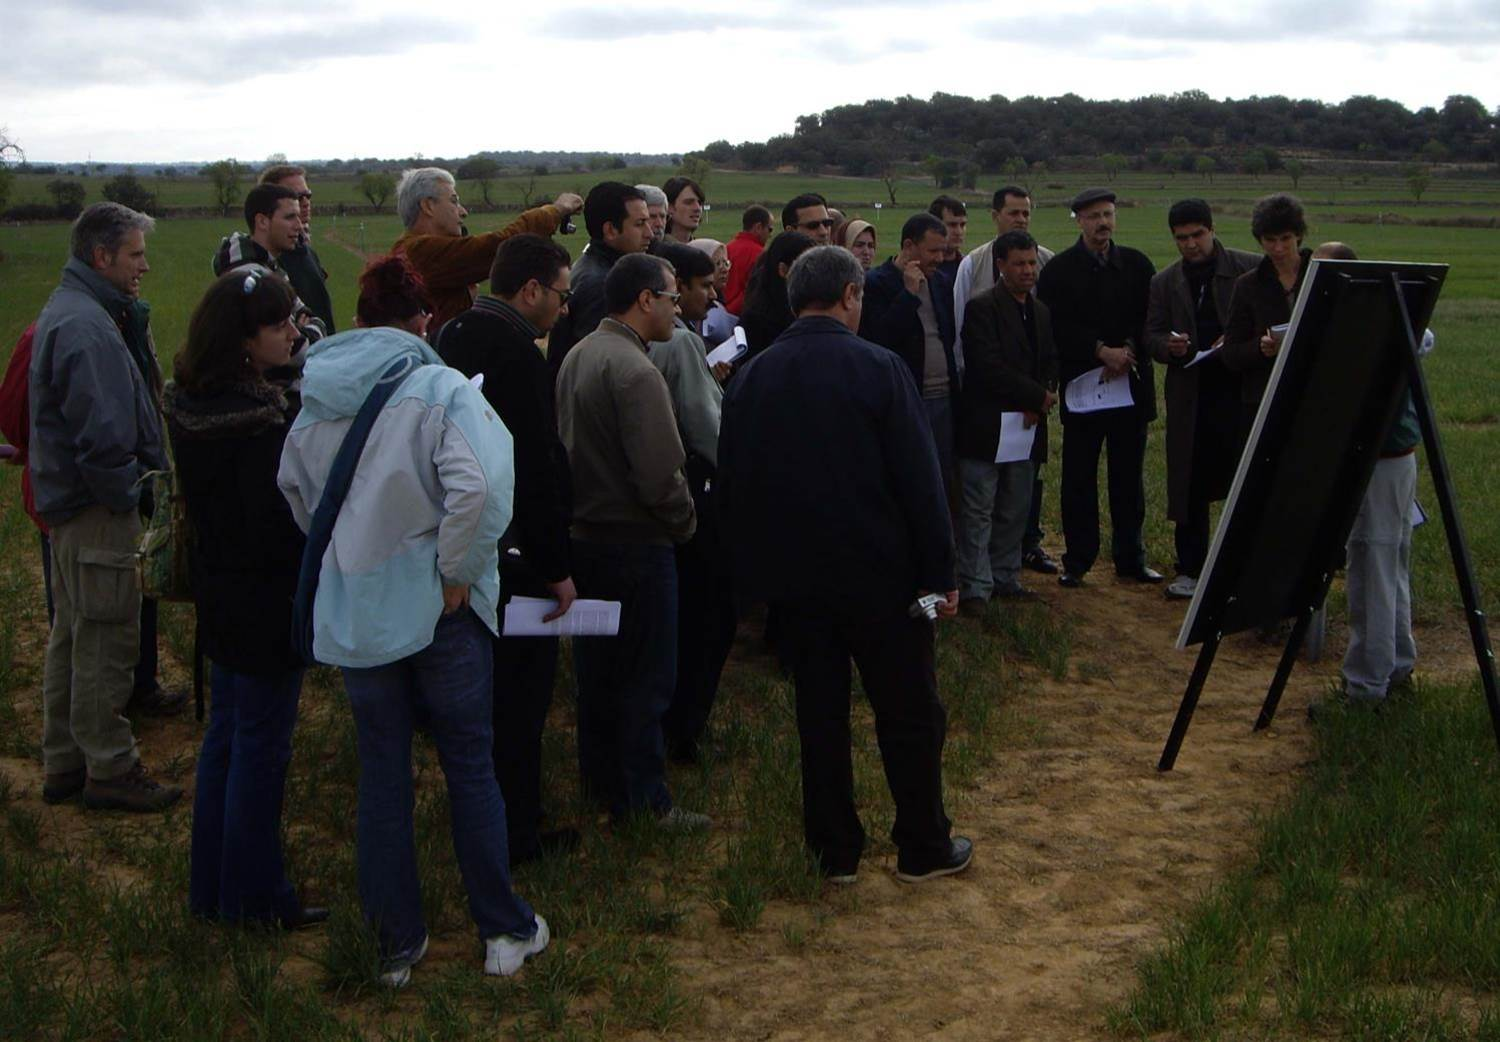 Participants gather in the field for viewing conservation agriculture on a nearby farm